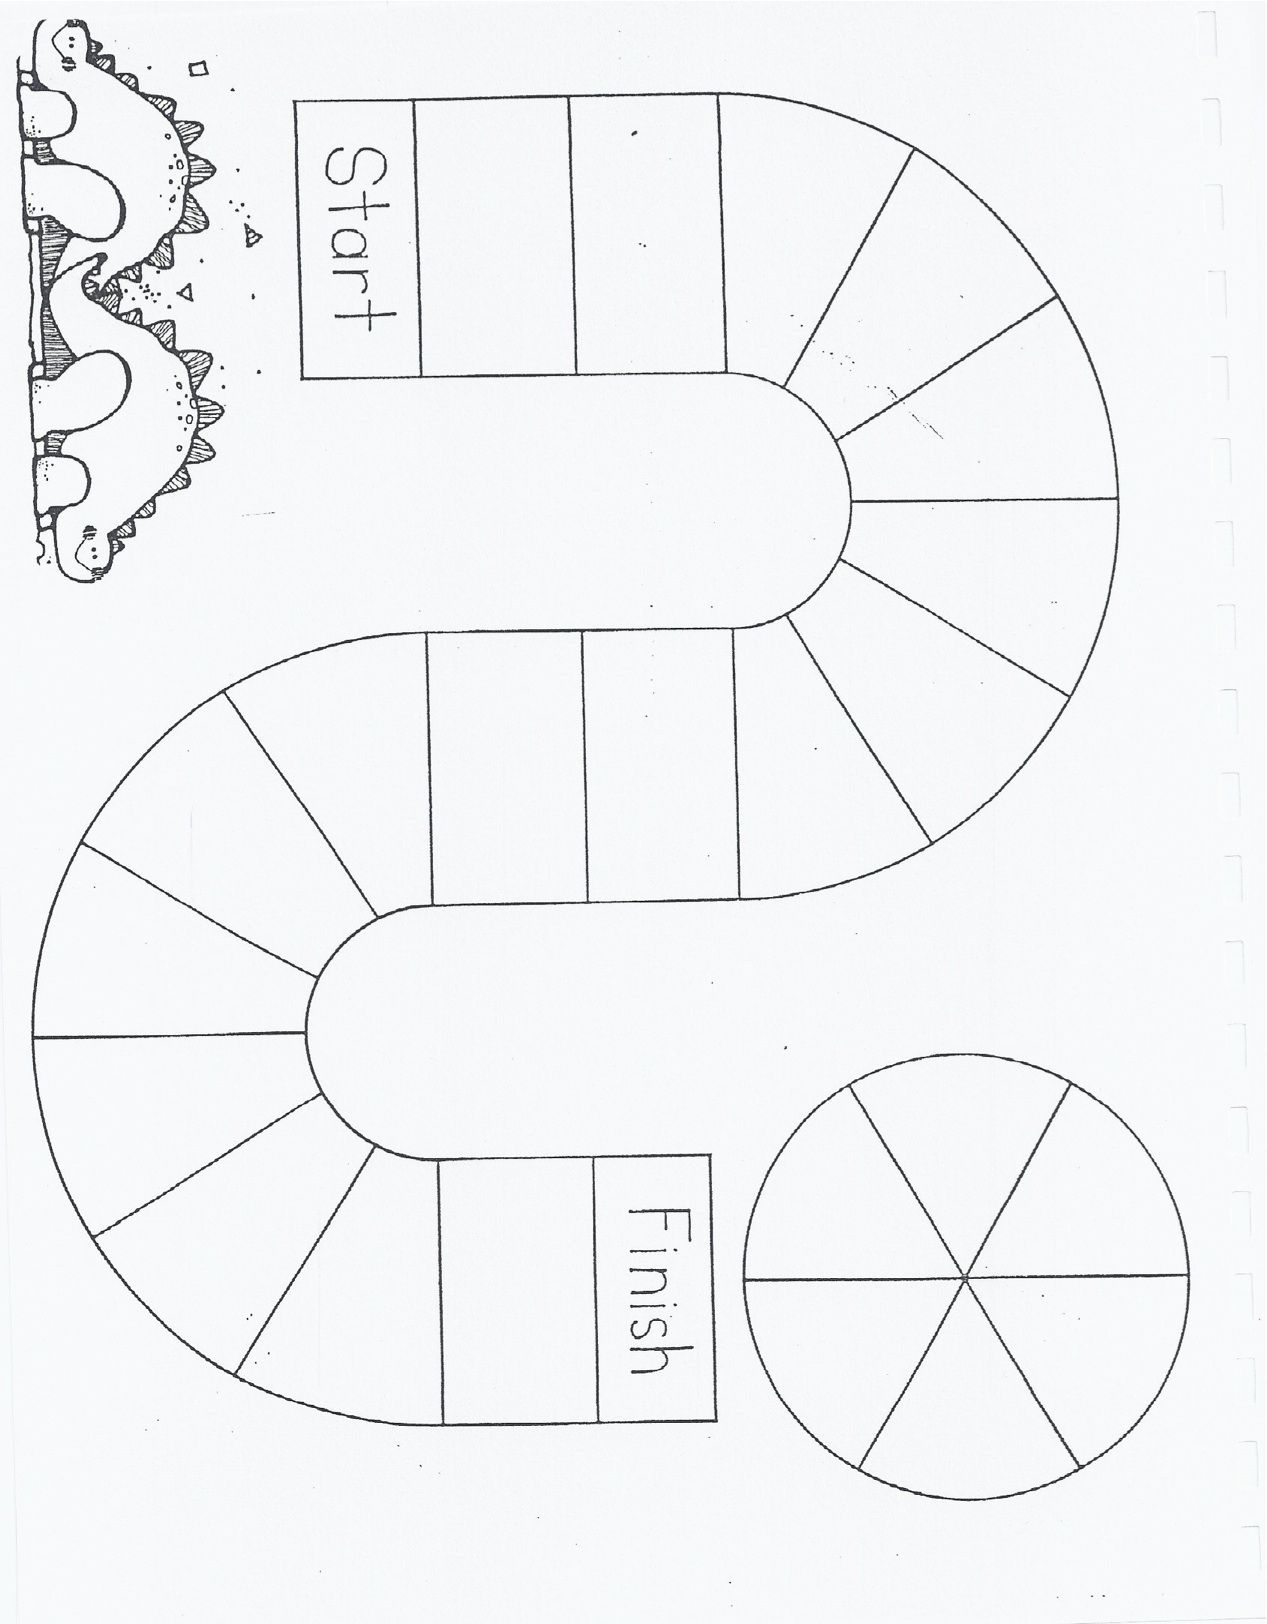 candyland board game clipart throughout blank candyland